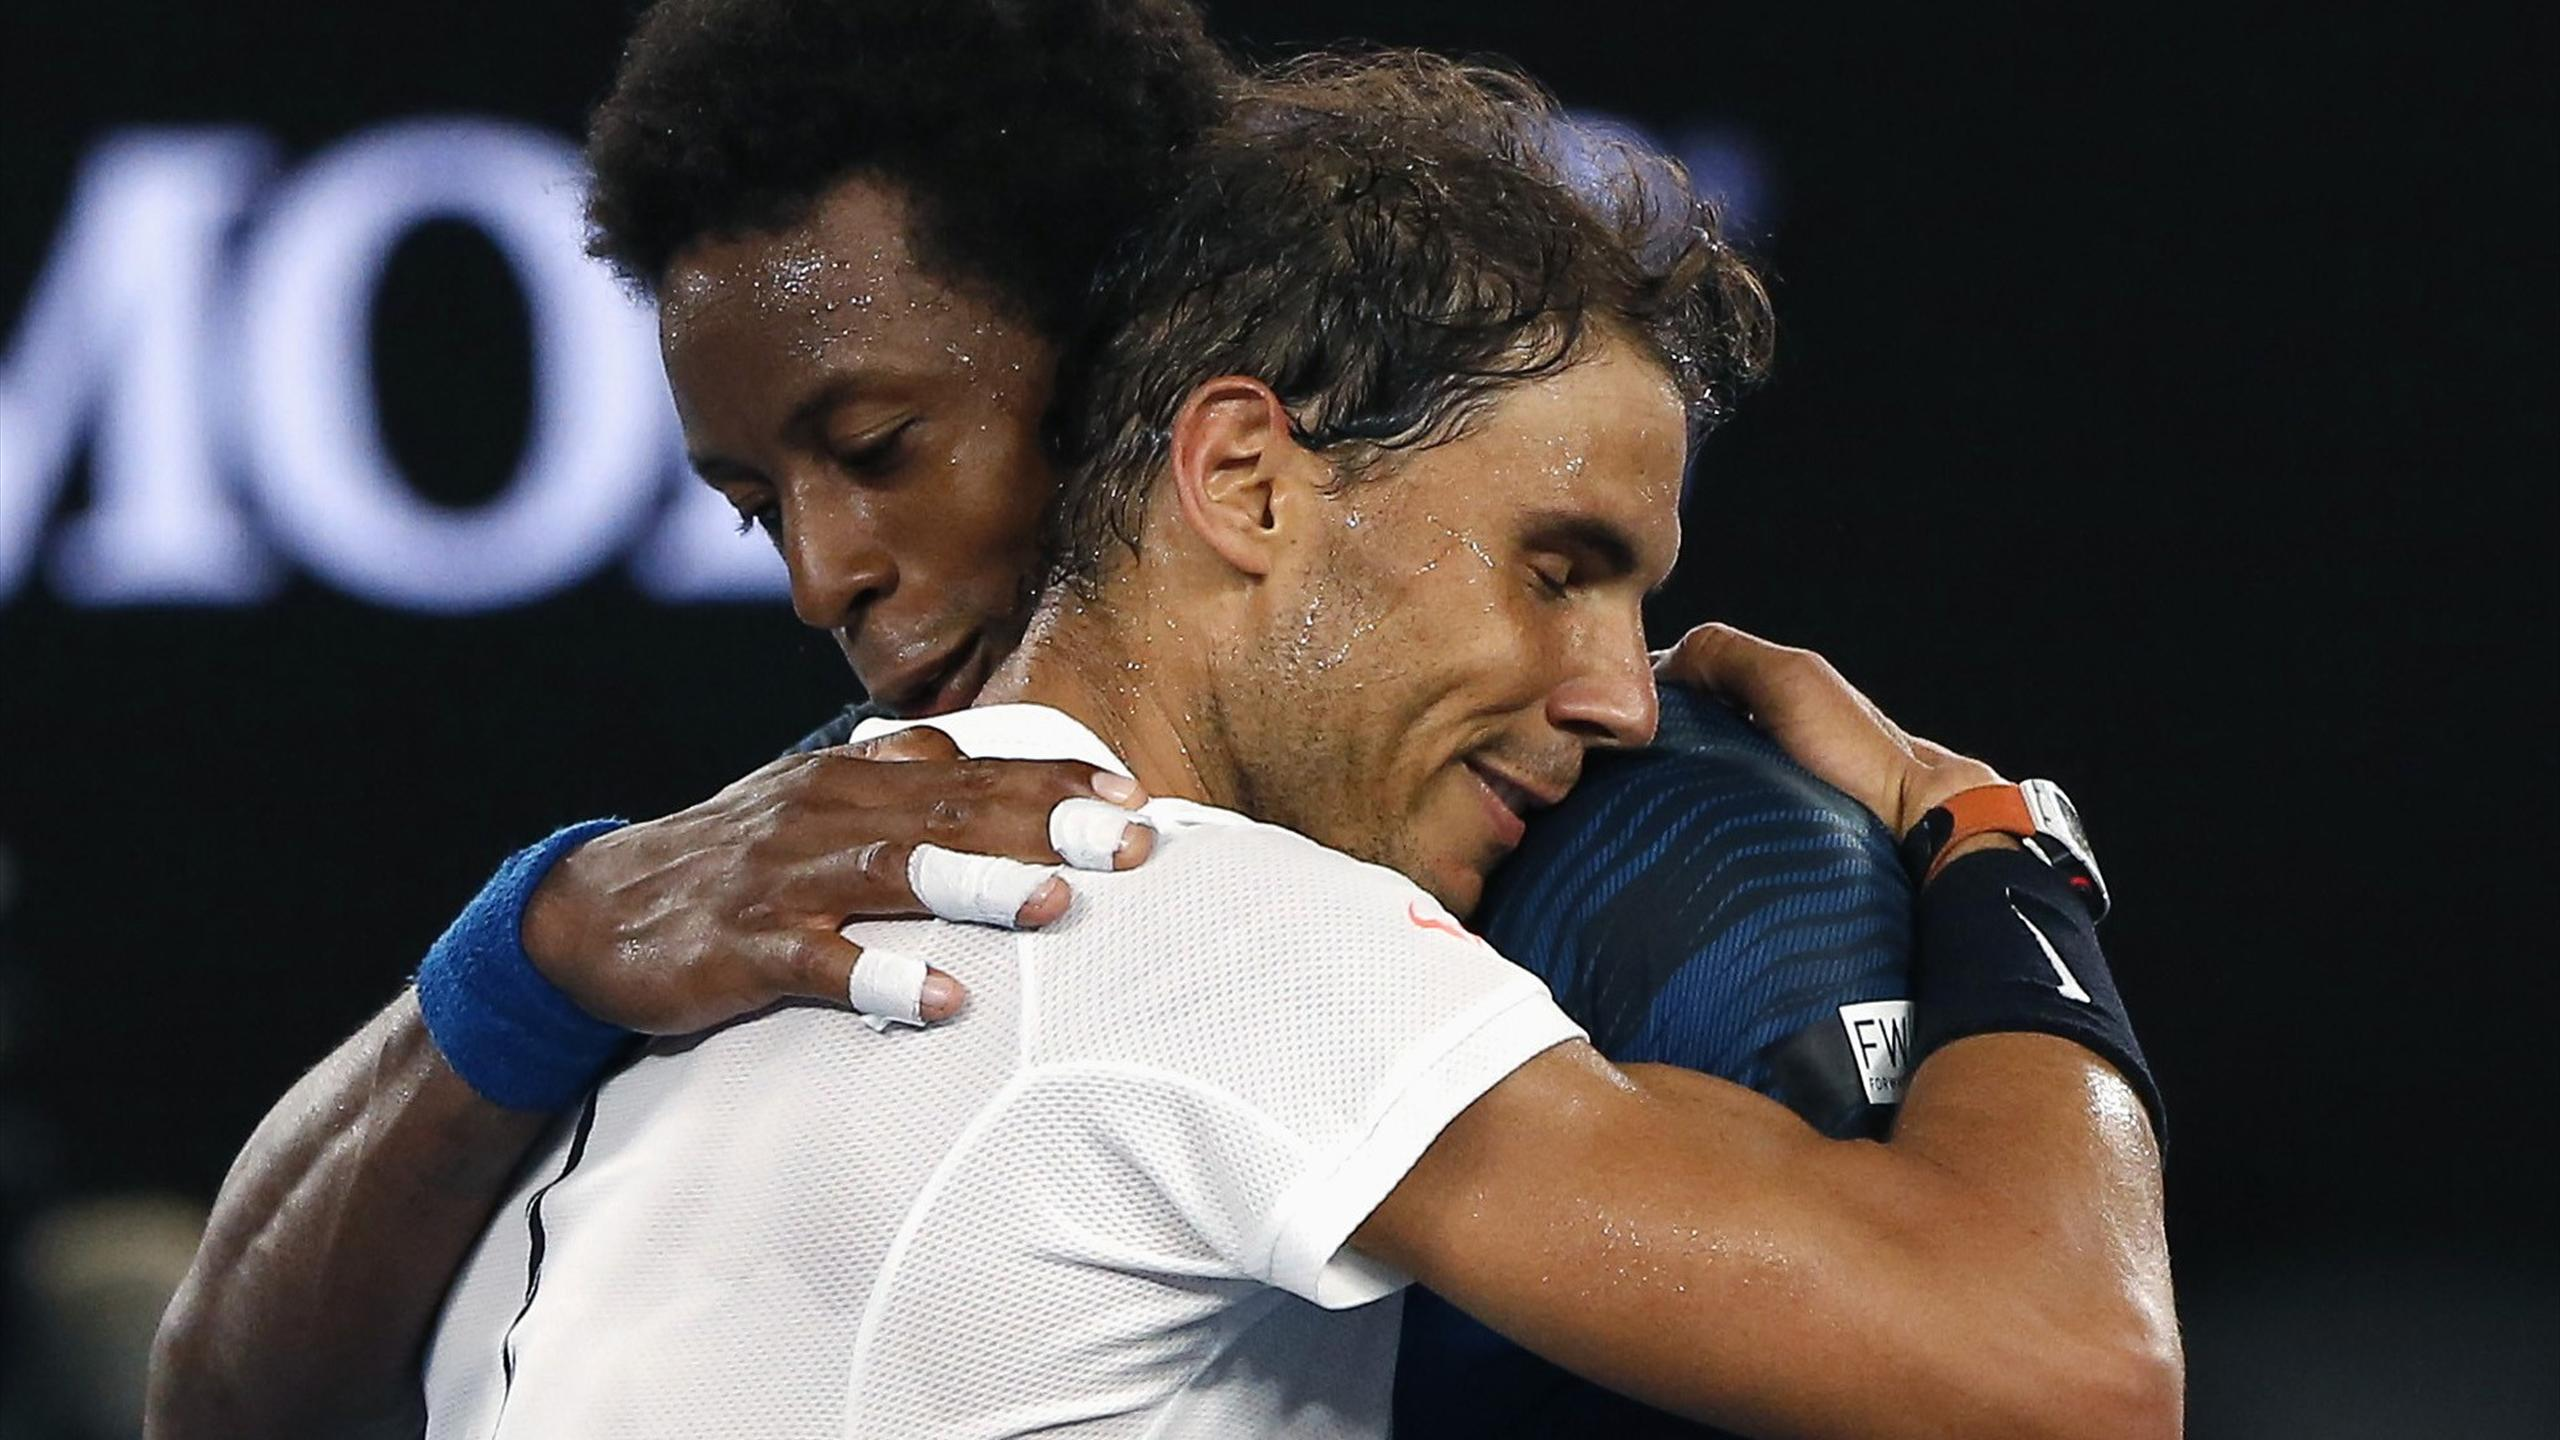 Spain's Rafael Nadal consoles France's Gael Monfils after winning their Men's singles fourth round match